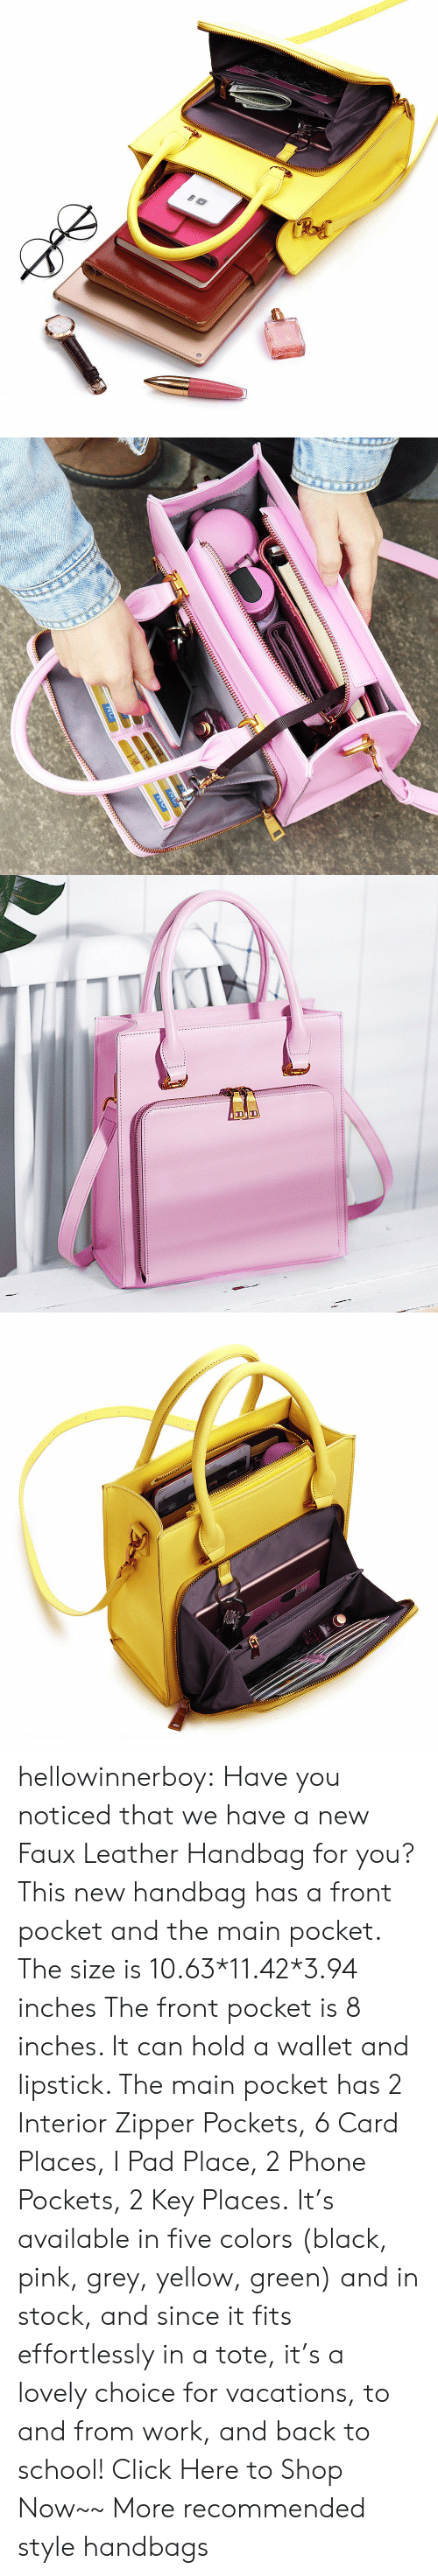 Click, Phone, and School: RA hellowinnerboy: Have you noticed that we have a new Faux Leather Handbag for you? This new handbag has a front pocket and the main pocket. The size is 10.63*11.42*3.94 inches The front pocket is 8 inches. It can hold a wallet and lipstick. The main pocket has 2 Interior Zipper Pockets, 6 Card Places, I Pad Place, 2 Phone Pockets, 2 Key Places. It's available in five colors (black, pink, grey, yellow, green) and in stock, and since it fits effortlessly in a tote, it's a lovely choice for vacations, to and from work, and back to school! Click Here to Shop Now~~ More recommended style handbags